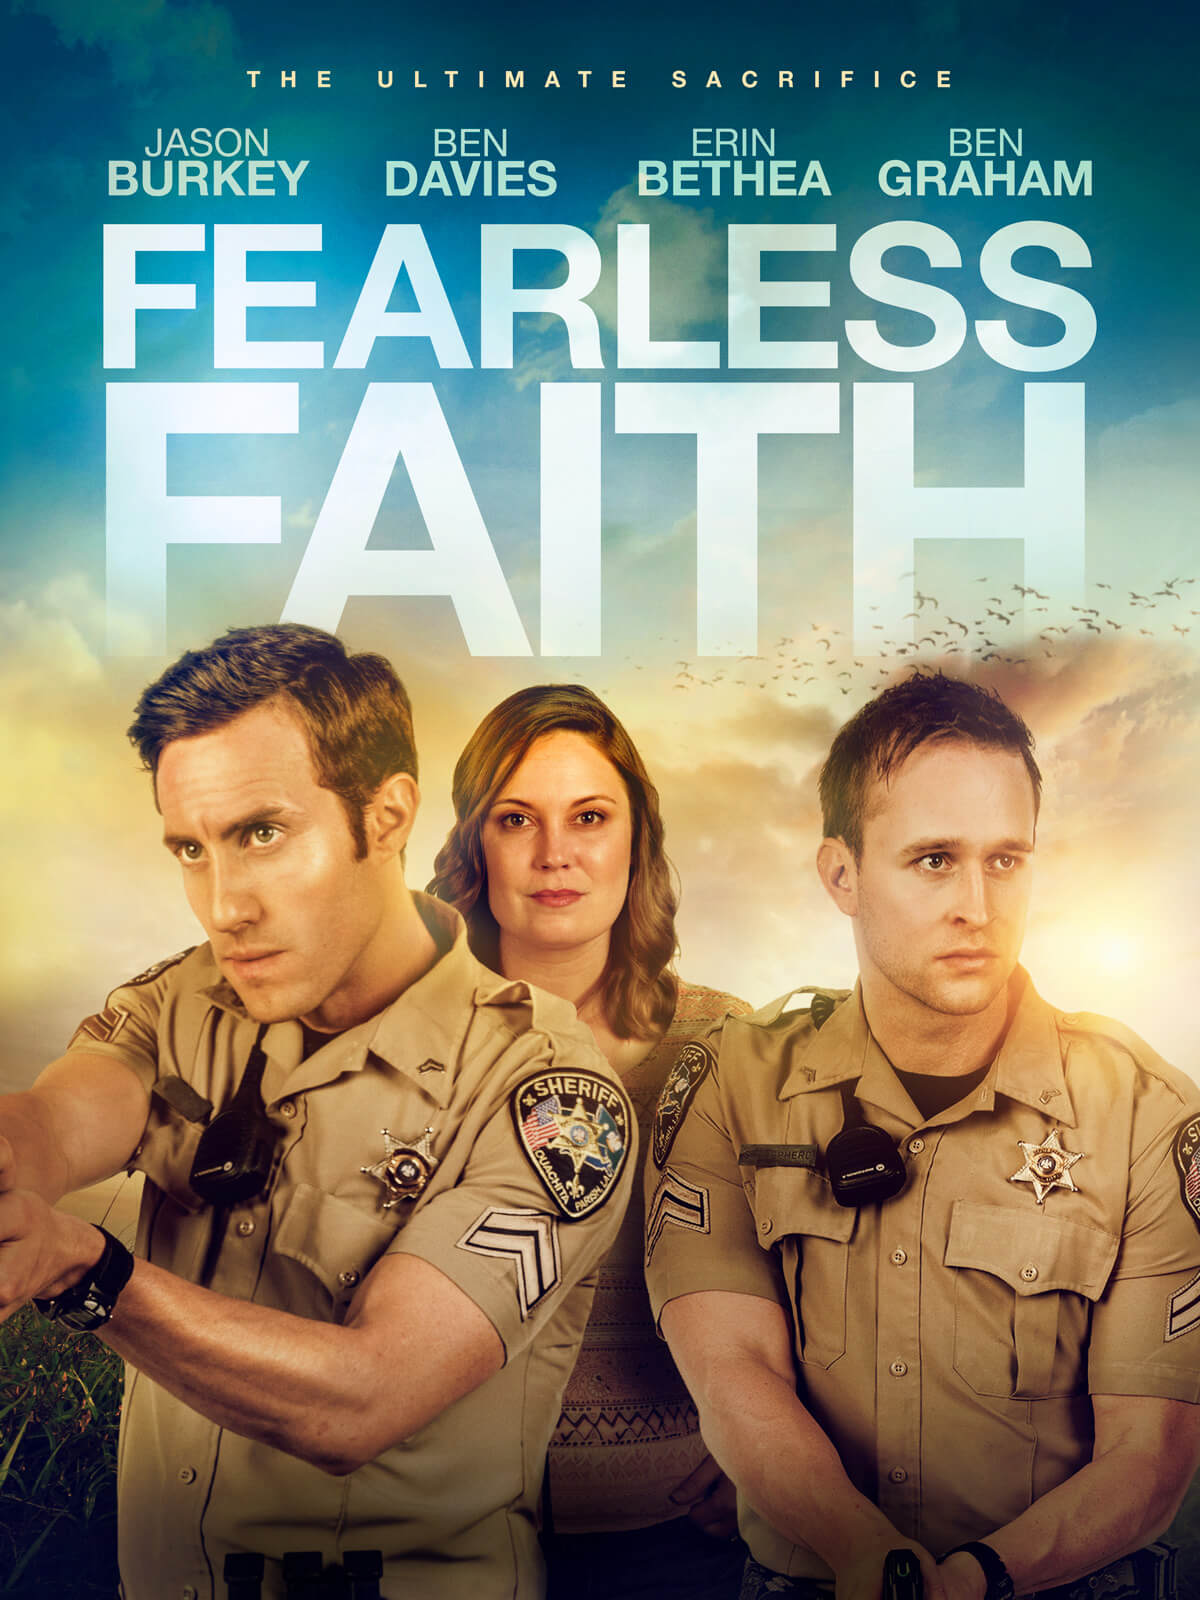 Fearless Faith 1200x1600 1 FEARLESS FAITH